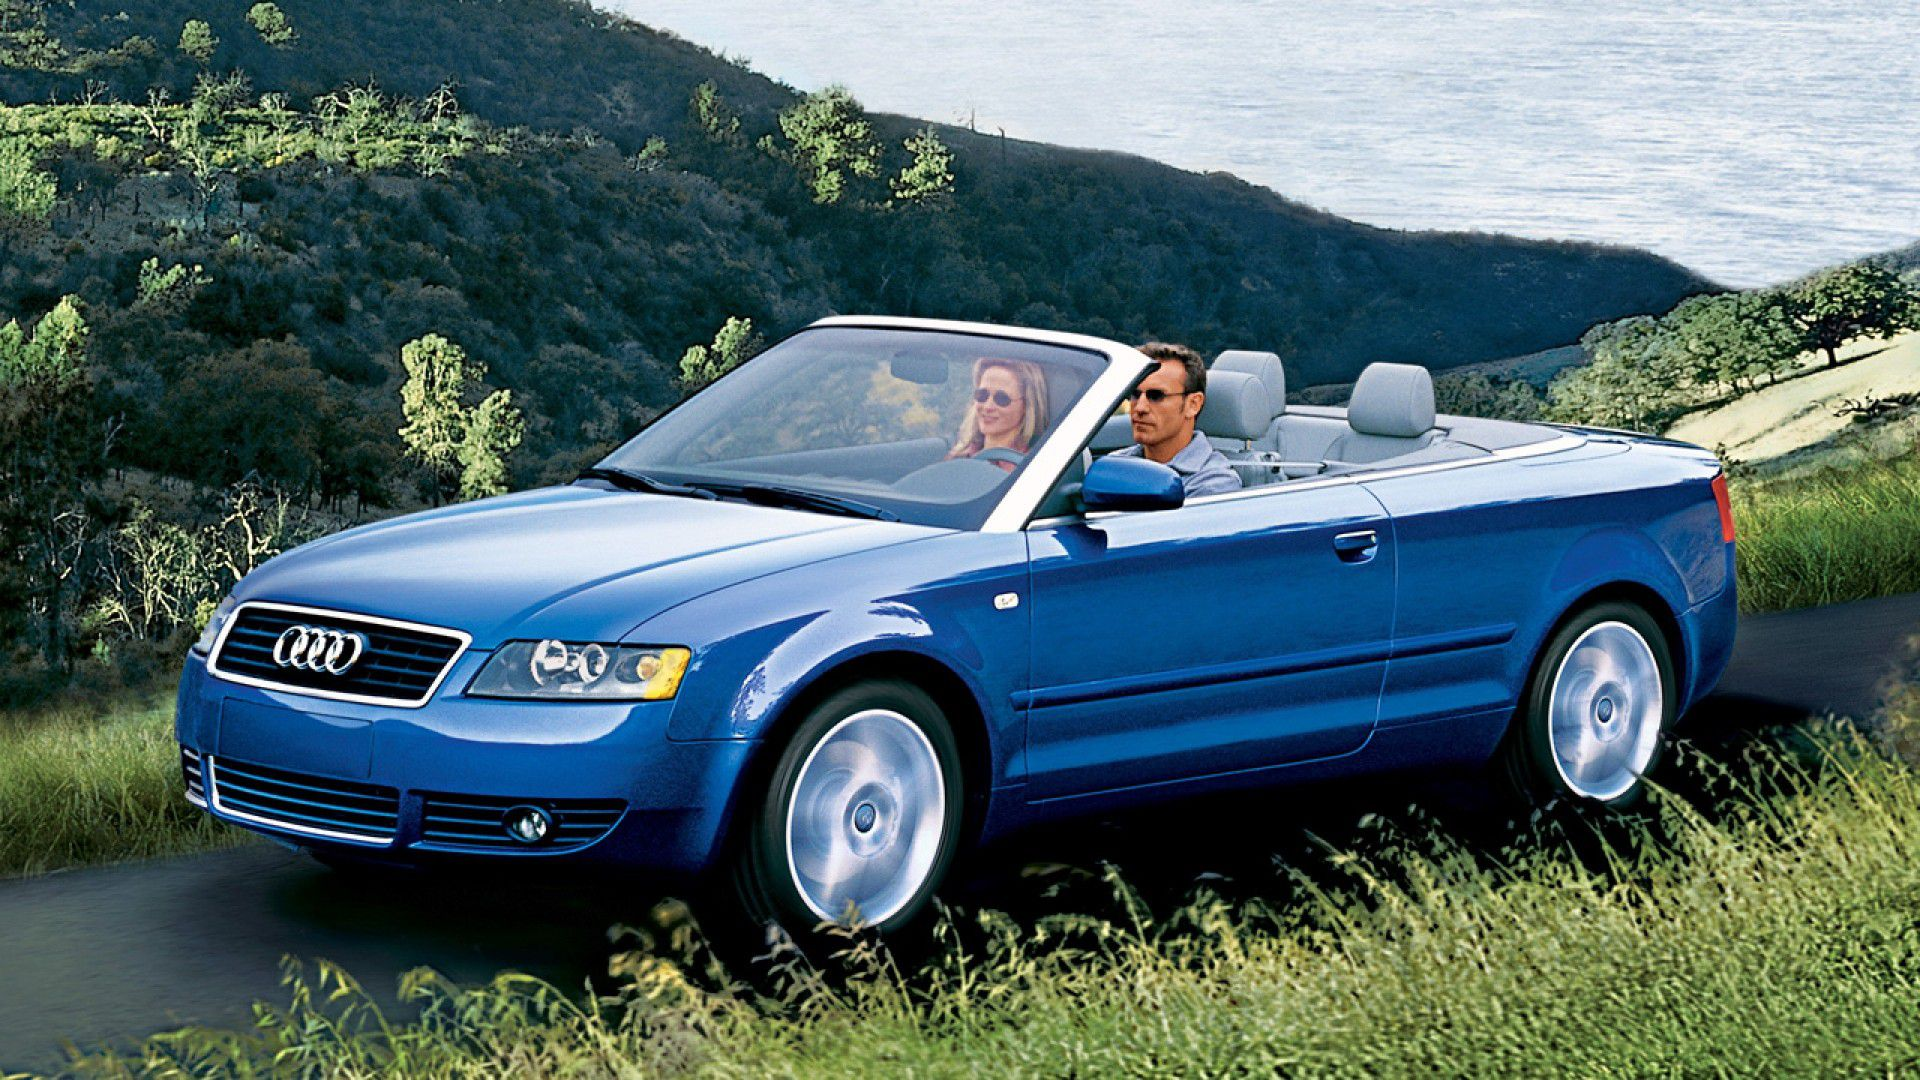 Audi A4 Cabriolet (2001 to 2005)